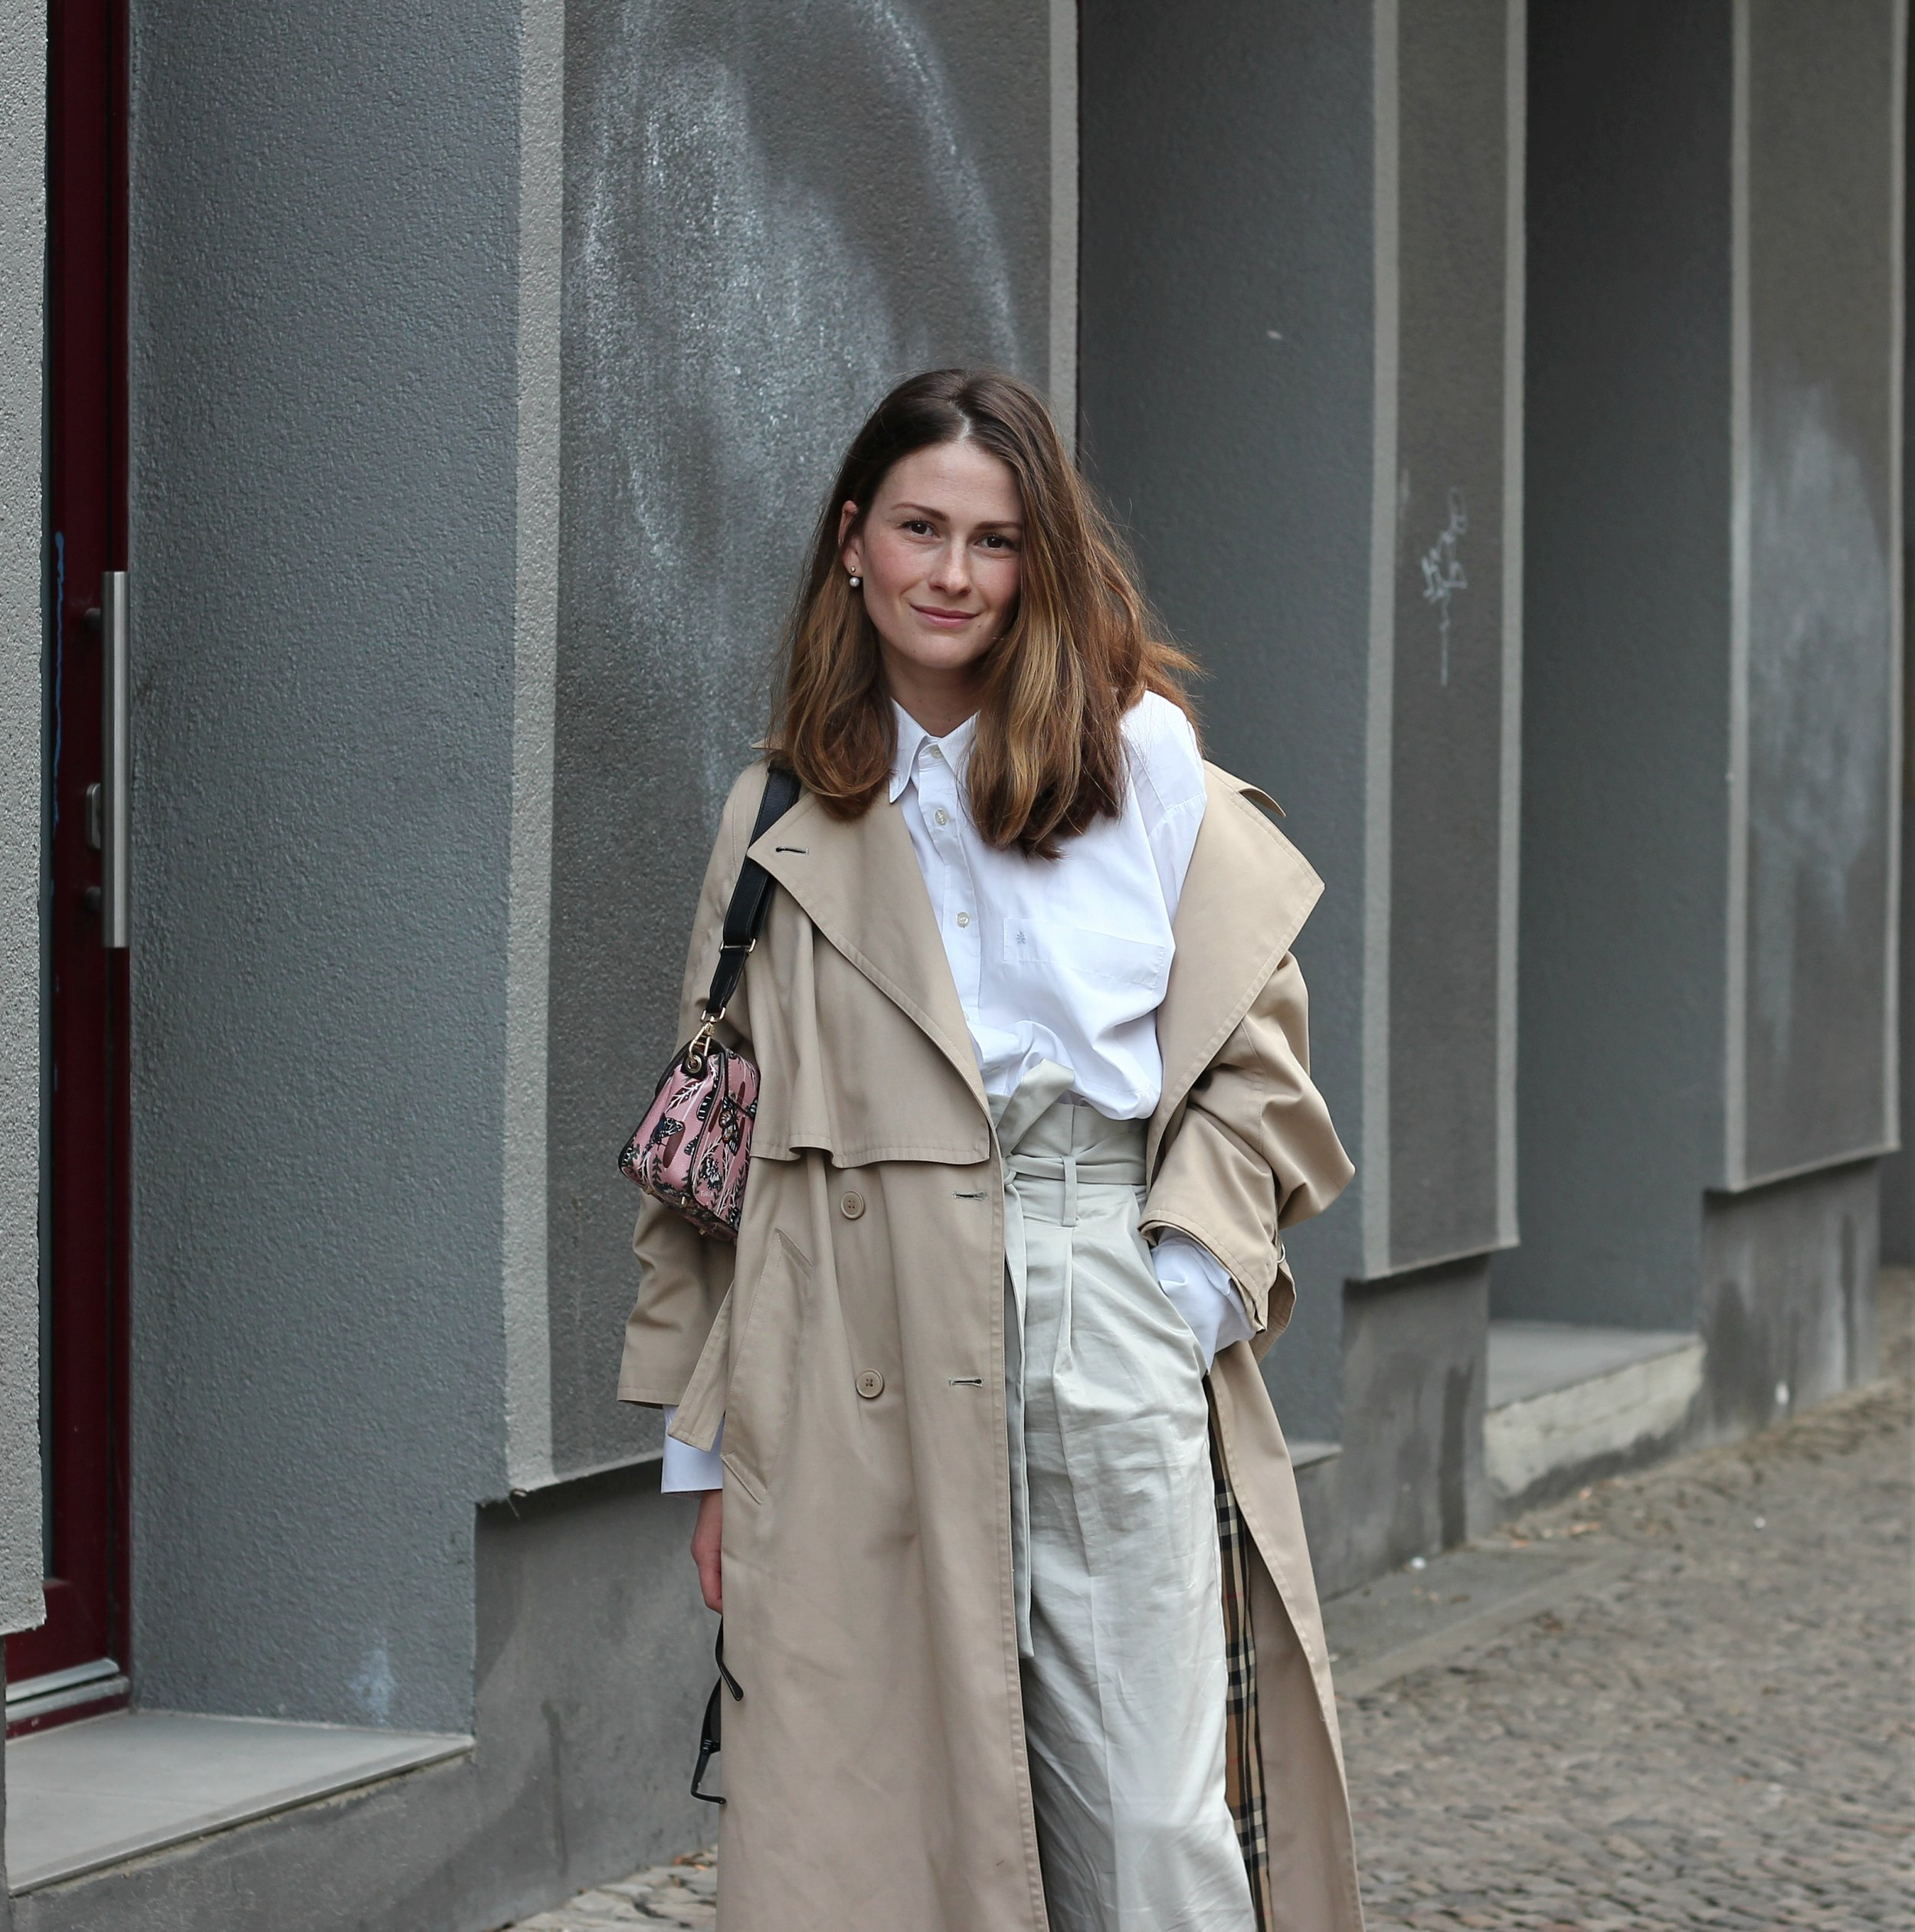 annaporter-portrait-trench-look.jpg